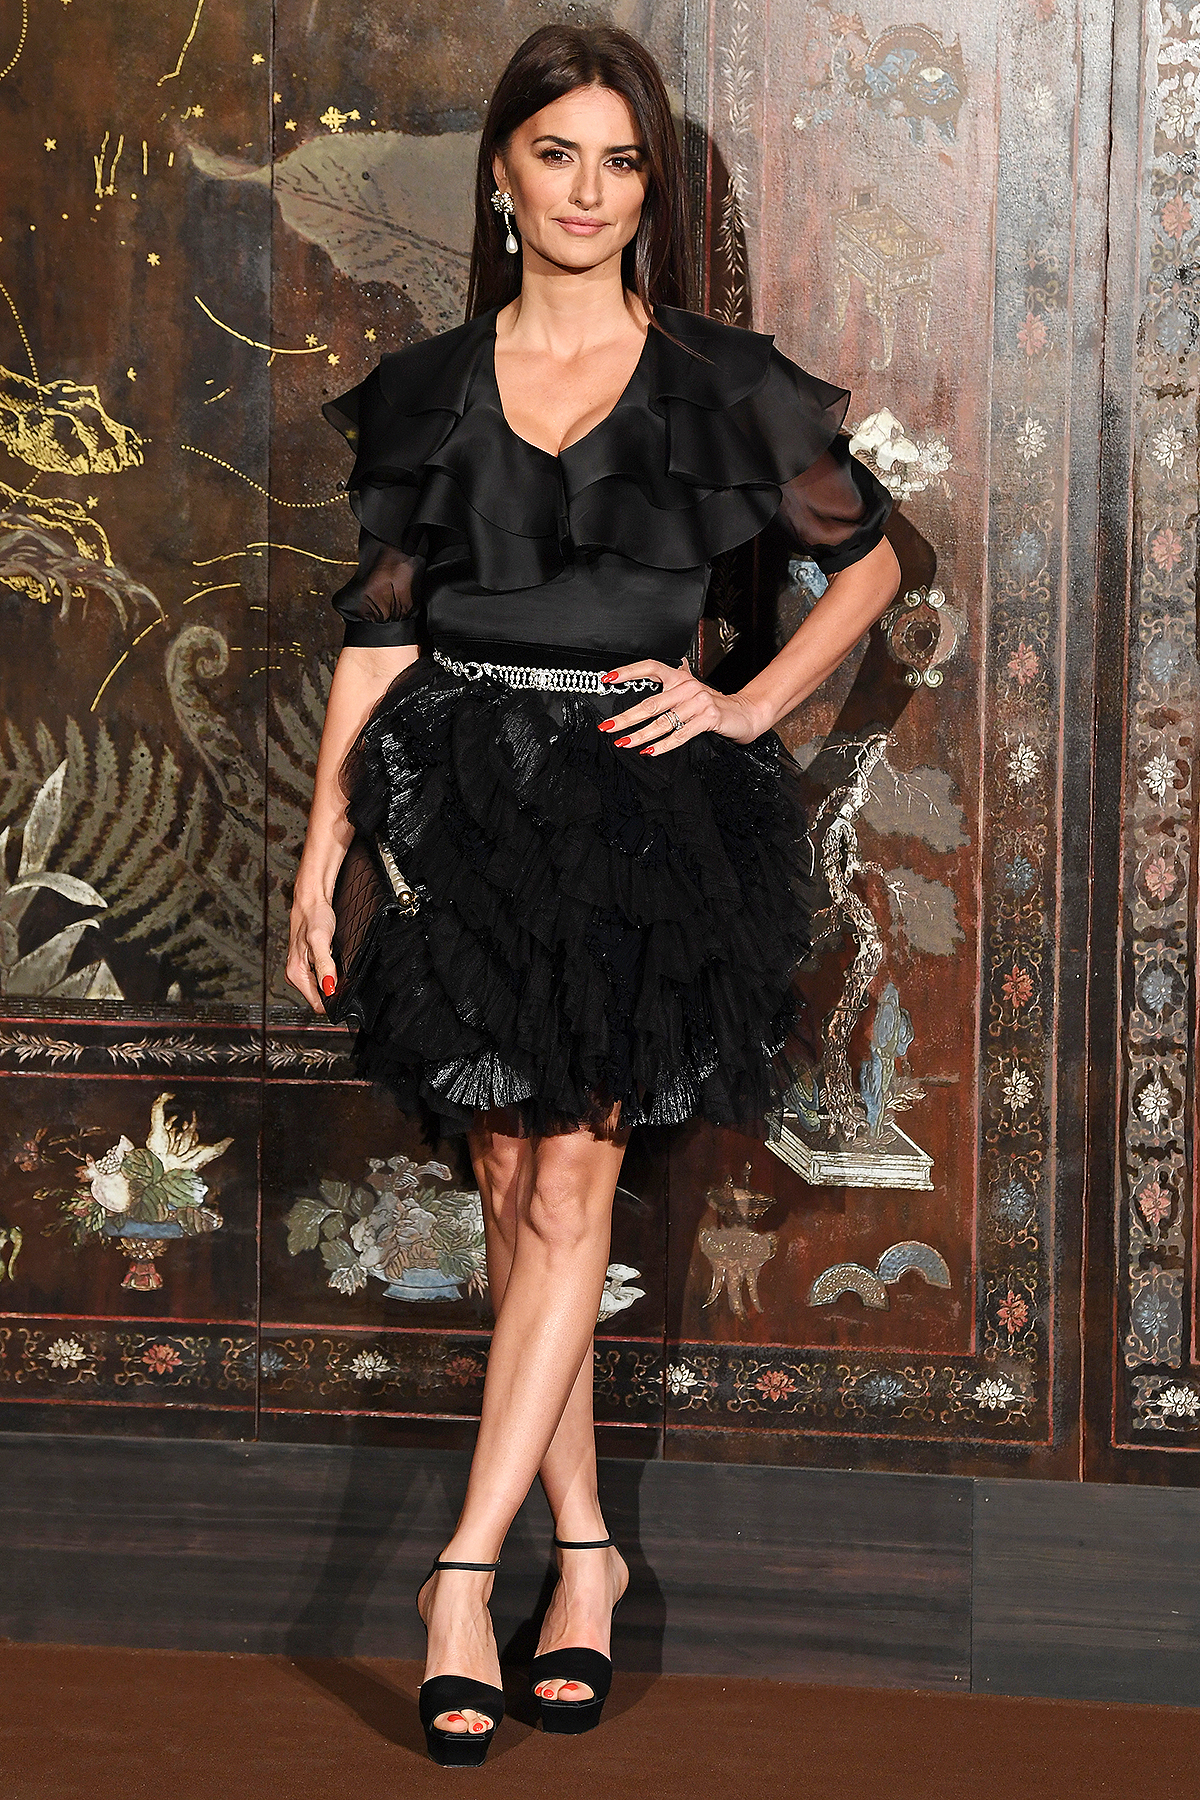 PARIS, FRANCE - DECEMBER 04: Penelope Cruz attends the photocall of the Chanel Metiers d'art 2019-2020 show at Le Grand Palais on December 04, 2019 in Paris, France. (Photo by Pascal Le Segretain/Getty Images)